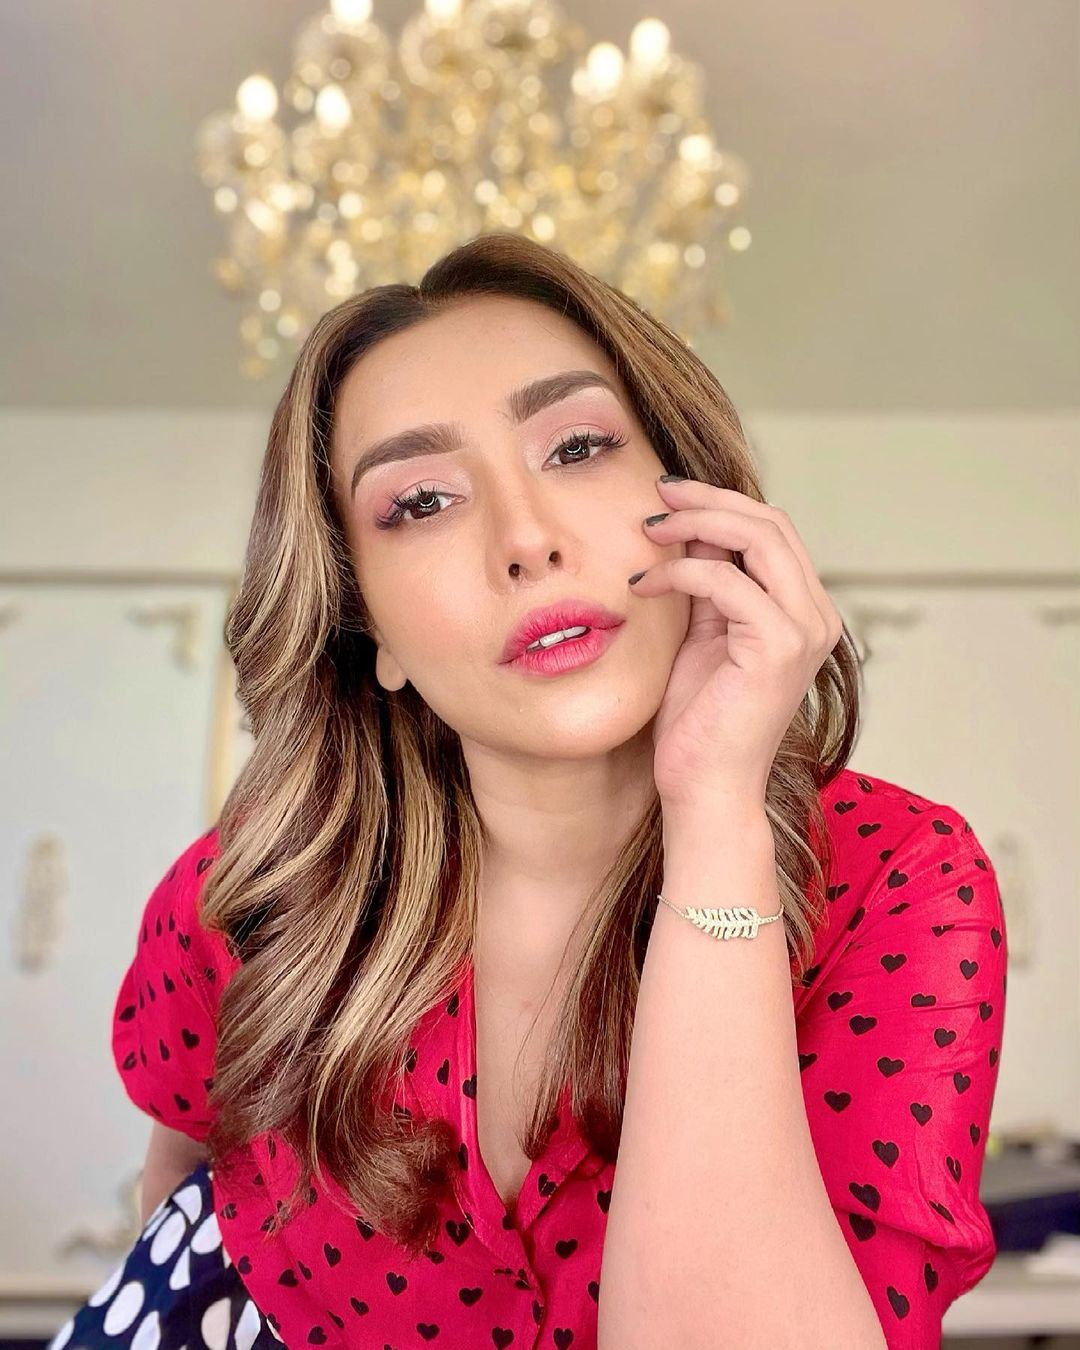 Latest Pictures of Maira Khan From her Instagram